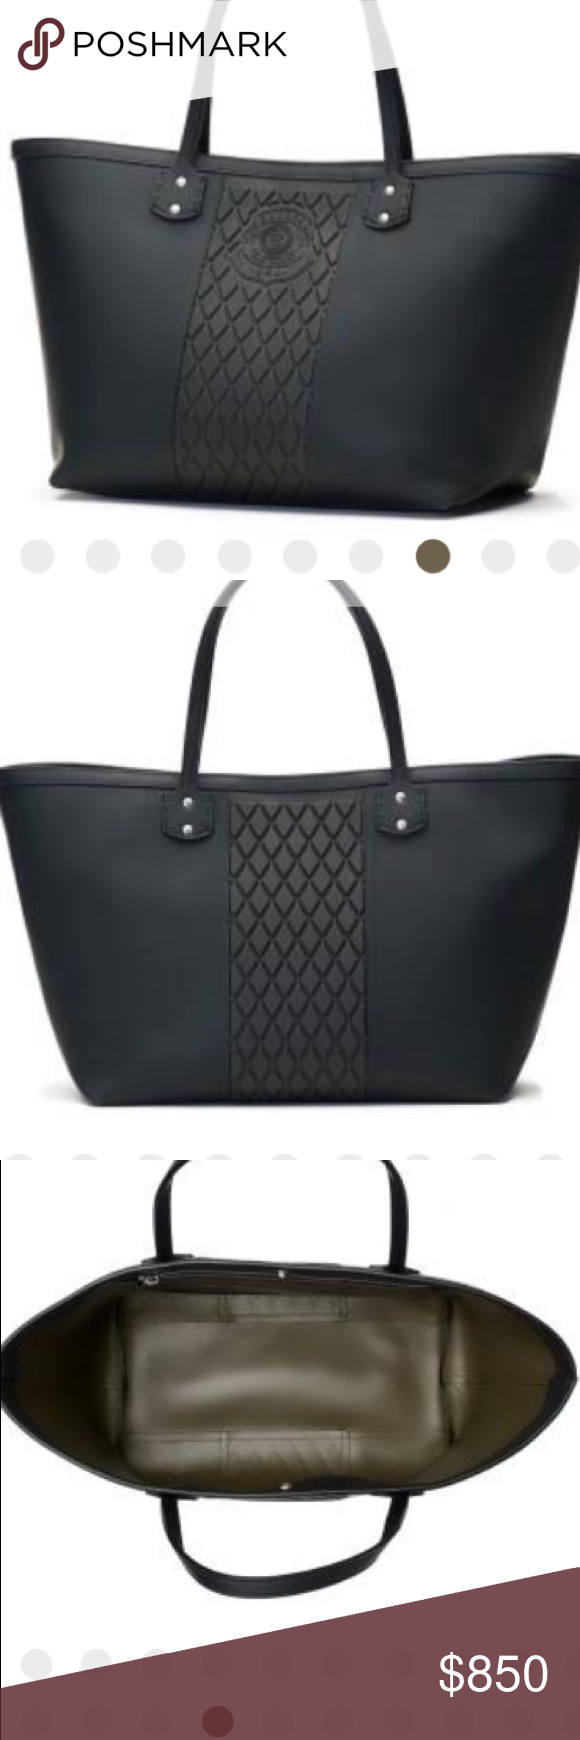 ef84abd5bf02 NWT - Ghurka rubberized leather tote NWT- The Smyth II large tote bag. Its